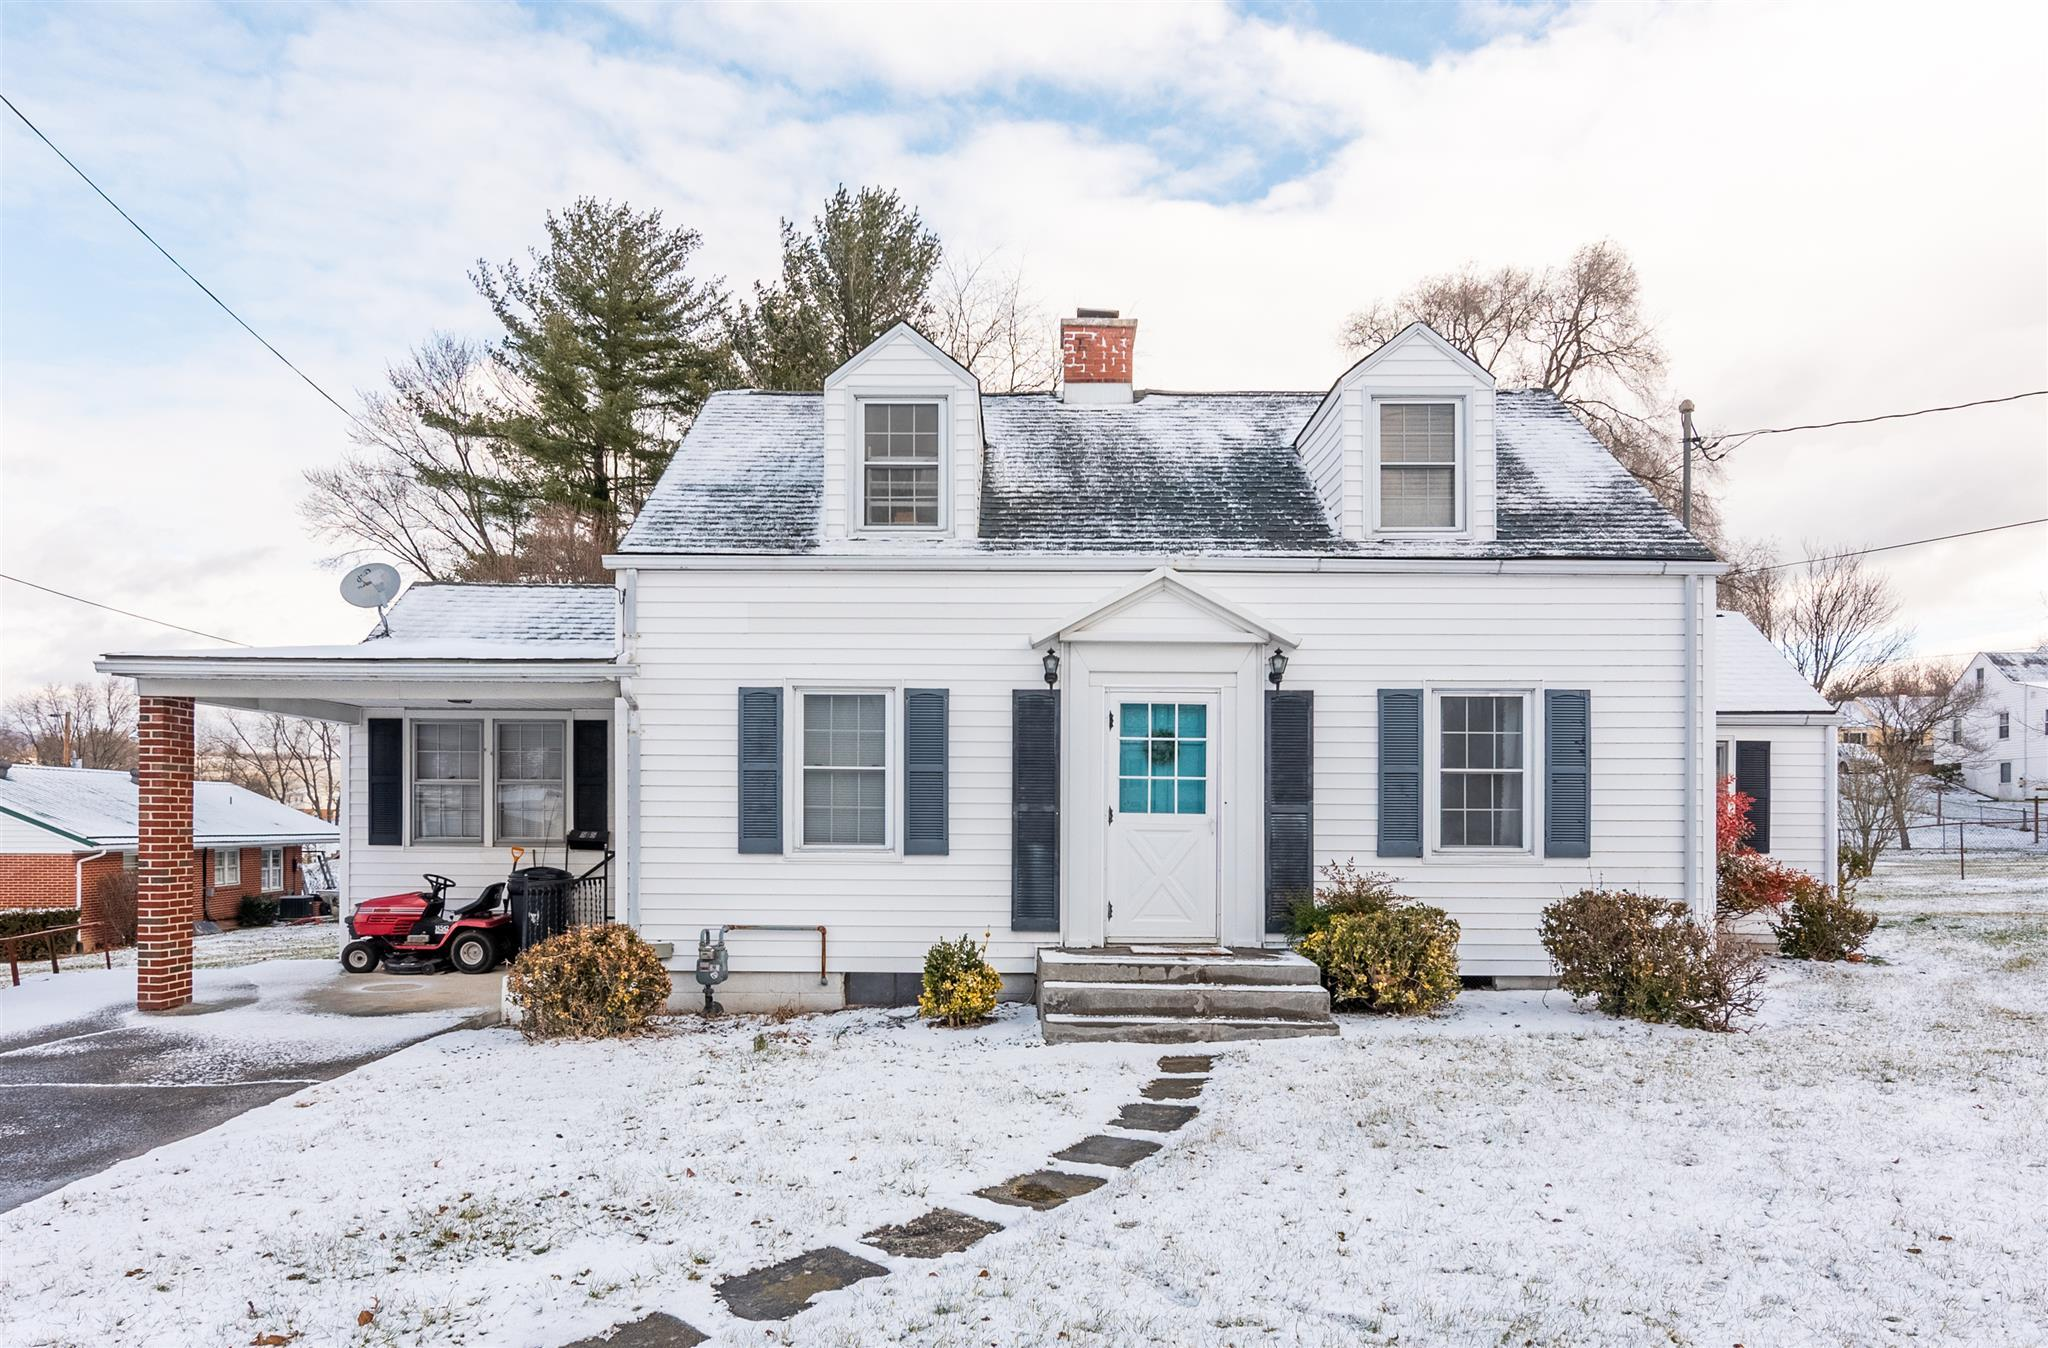 Lovely Cape Cod home located within the Fort Branch Subdivision. This well maintained three bedroom and two full bath property is move in ready! Entertain in the spacious living room and sunroom. Optimally located near the golf course, pool and park.